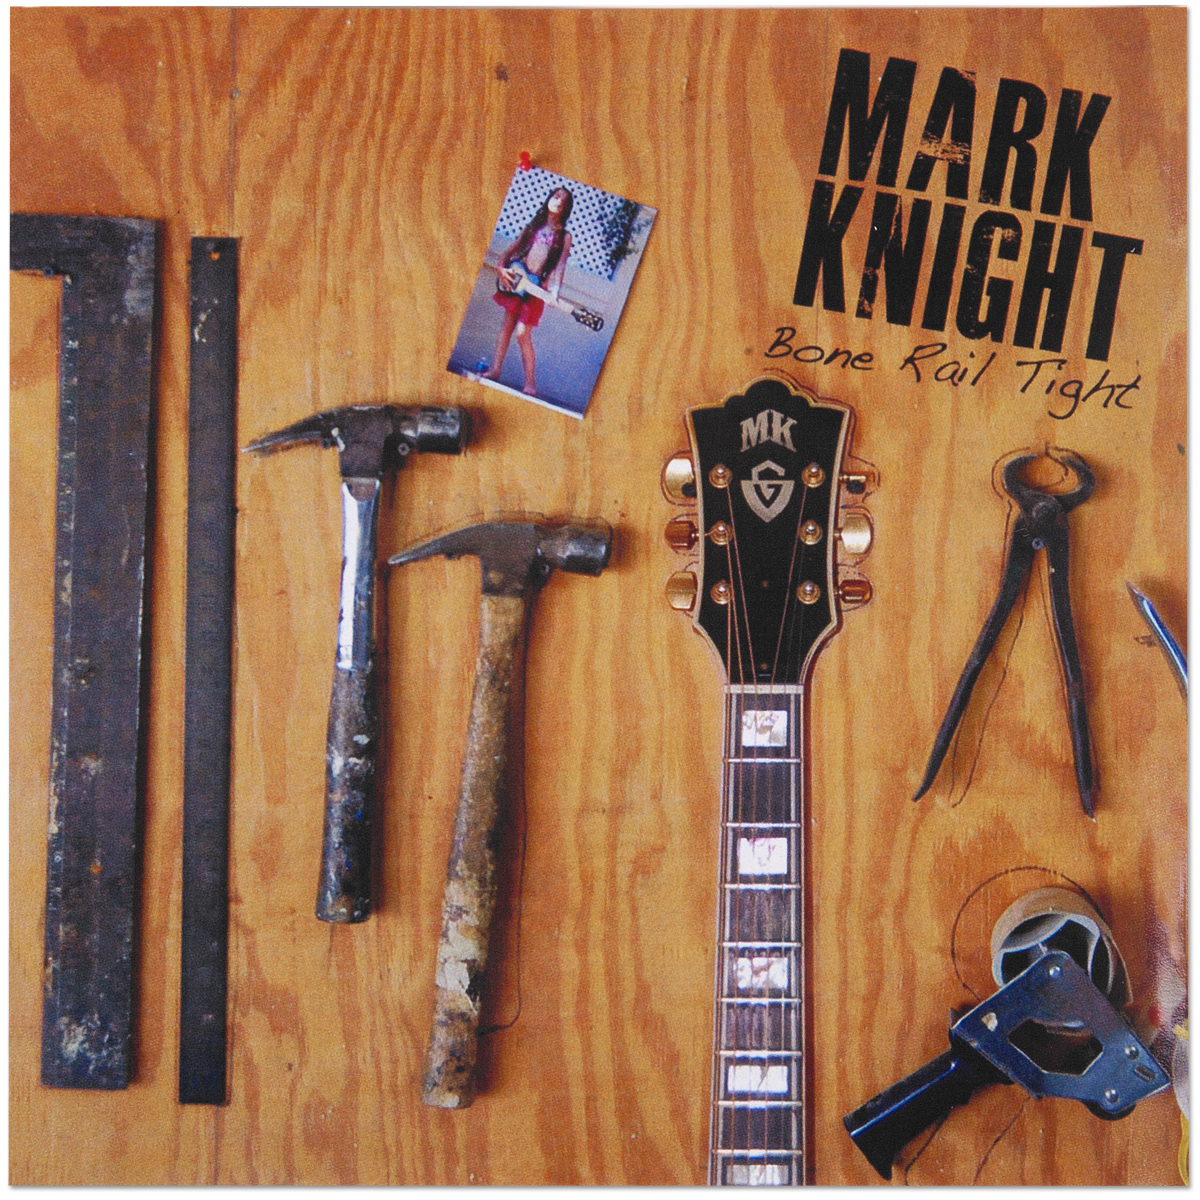 Mark Knight - Bone Rail Tight CD